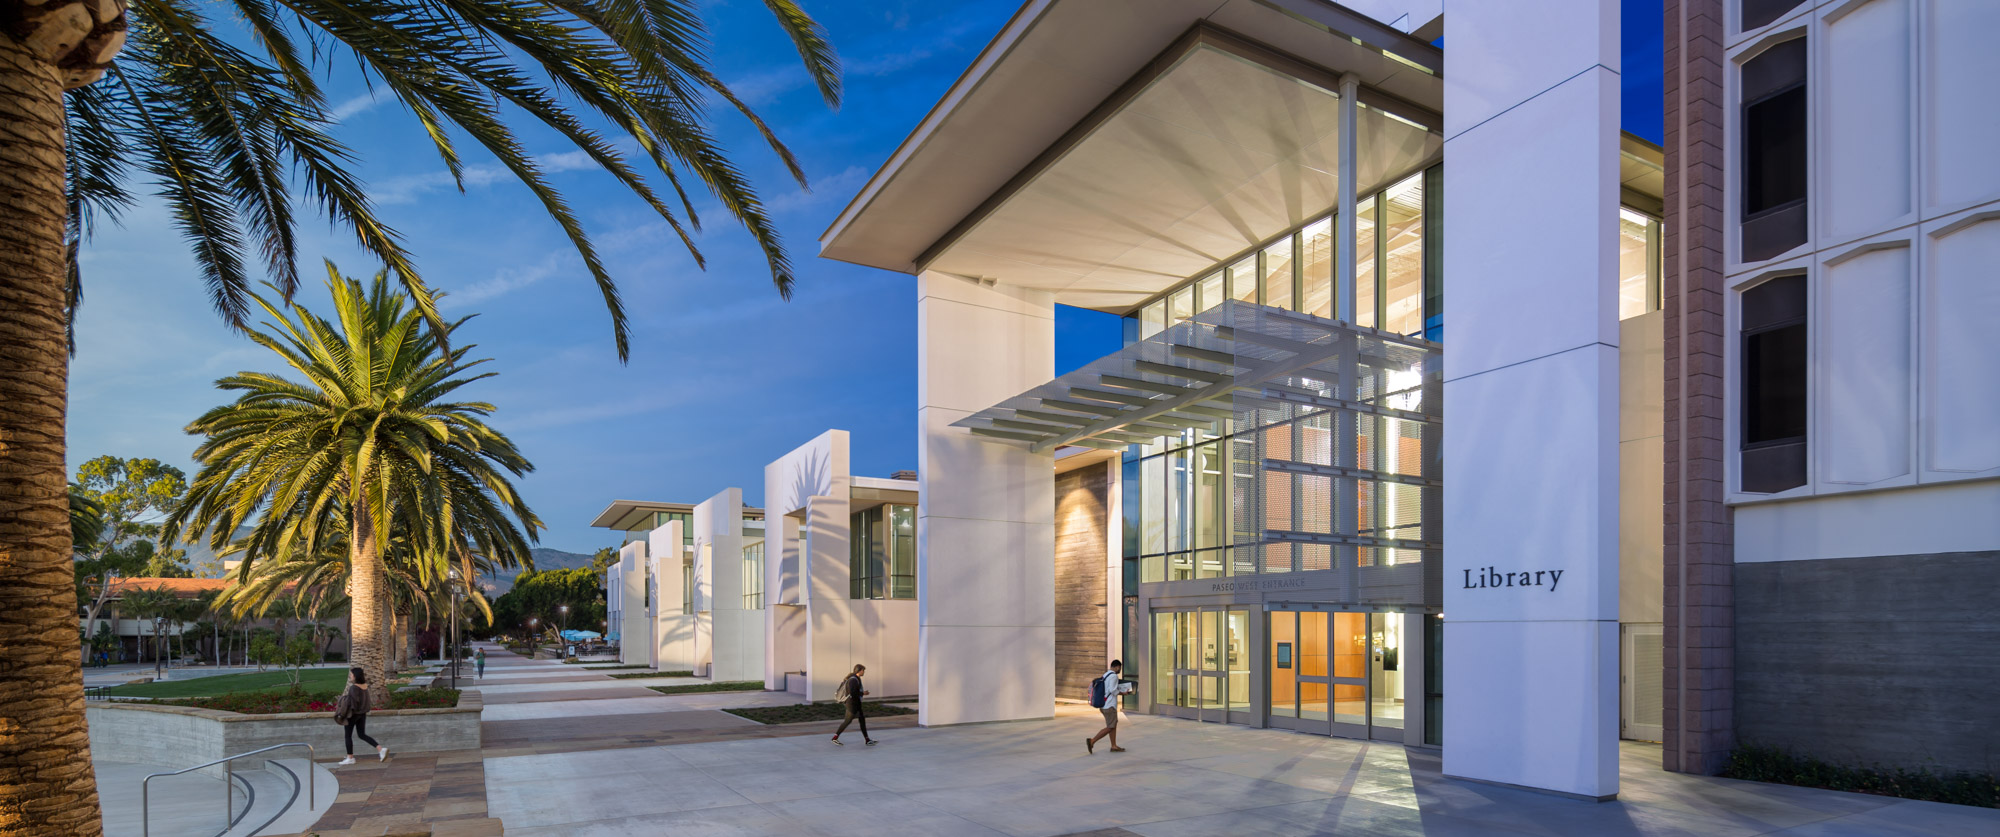 21-NYE_161204_UCSB_Library_Exterior_Architecture_4D